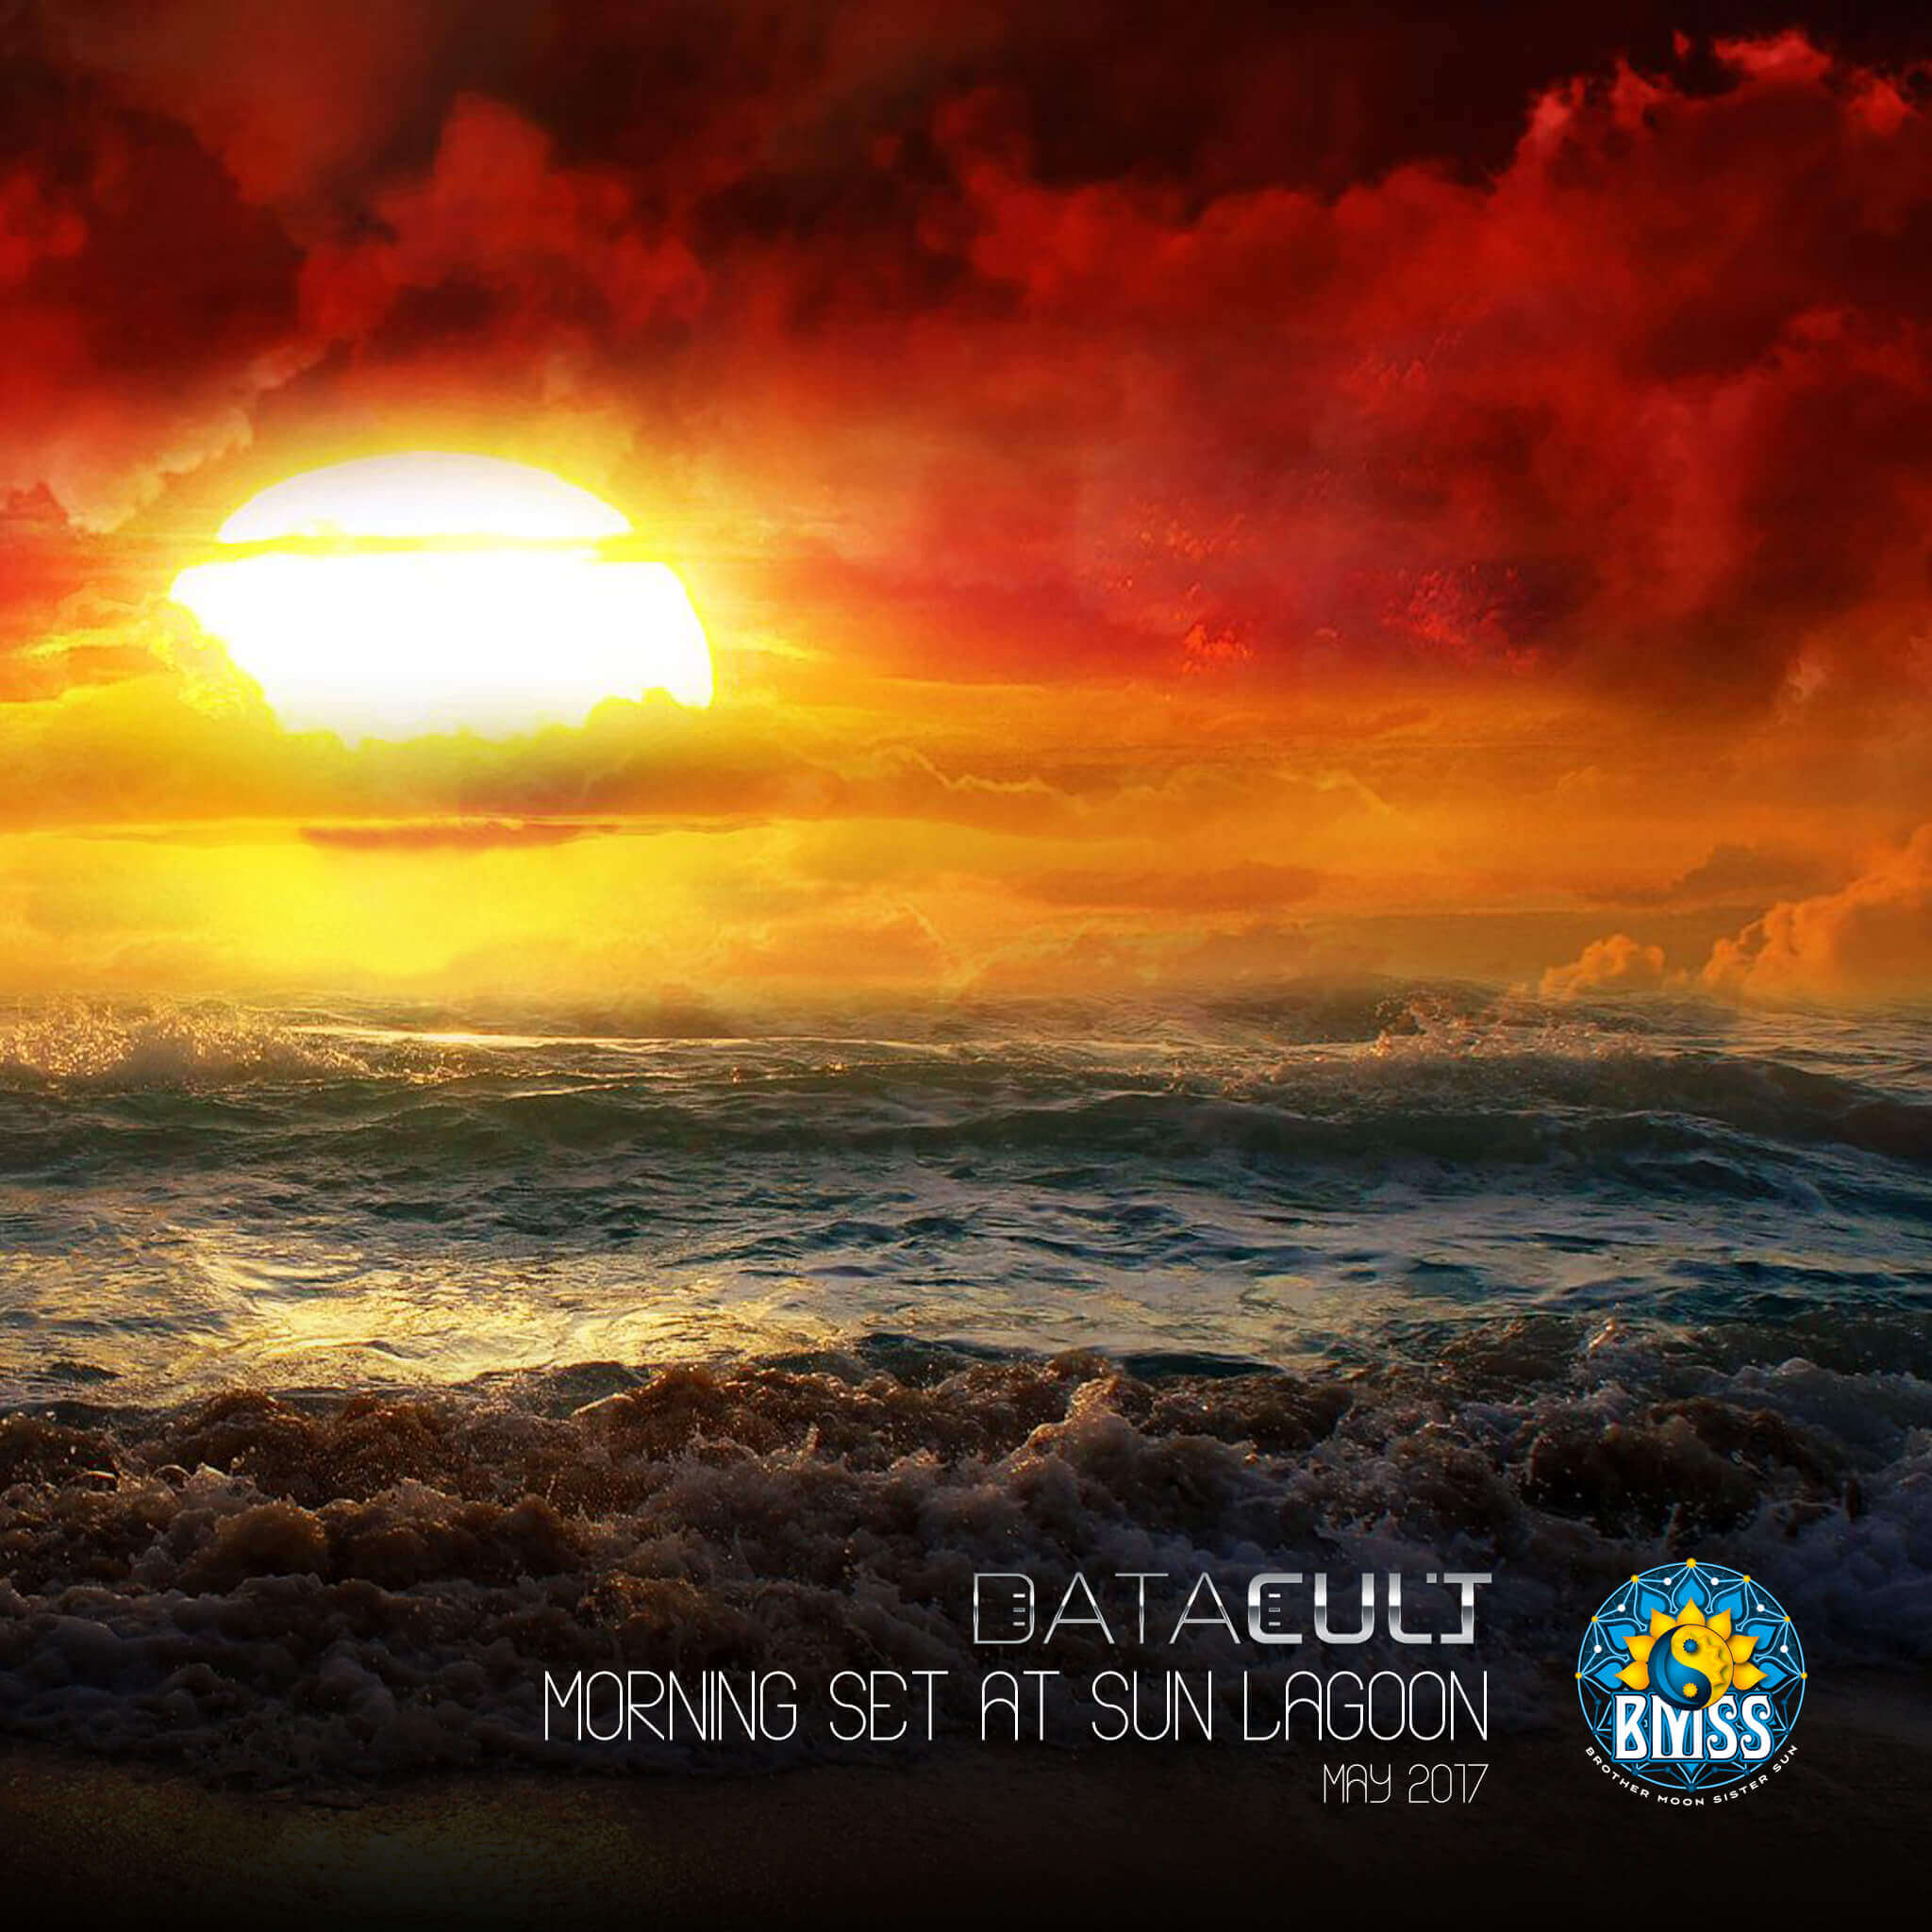 Datacult - Morning Set at Sun Lagoon [May 2017]